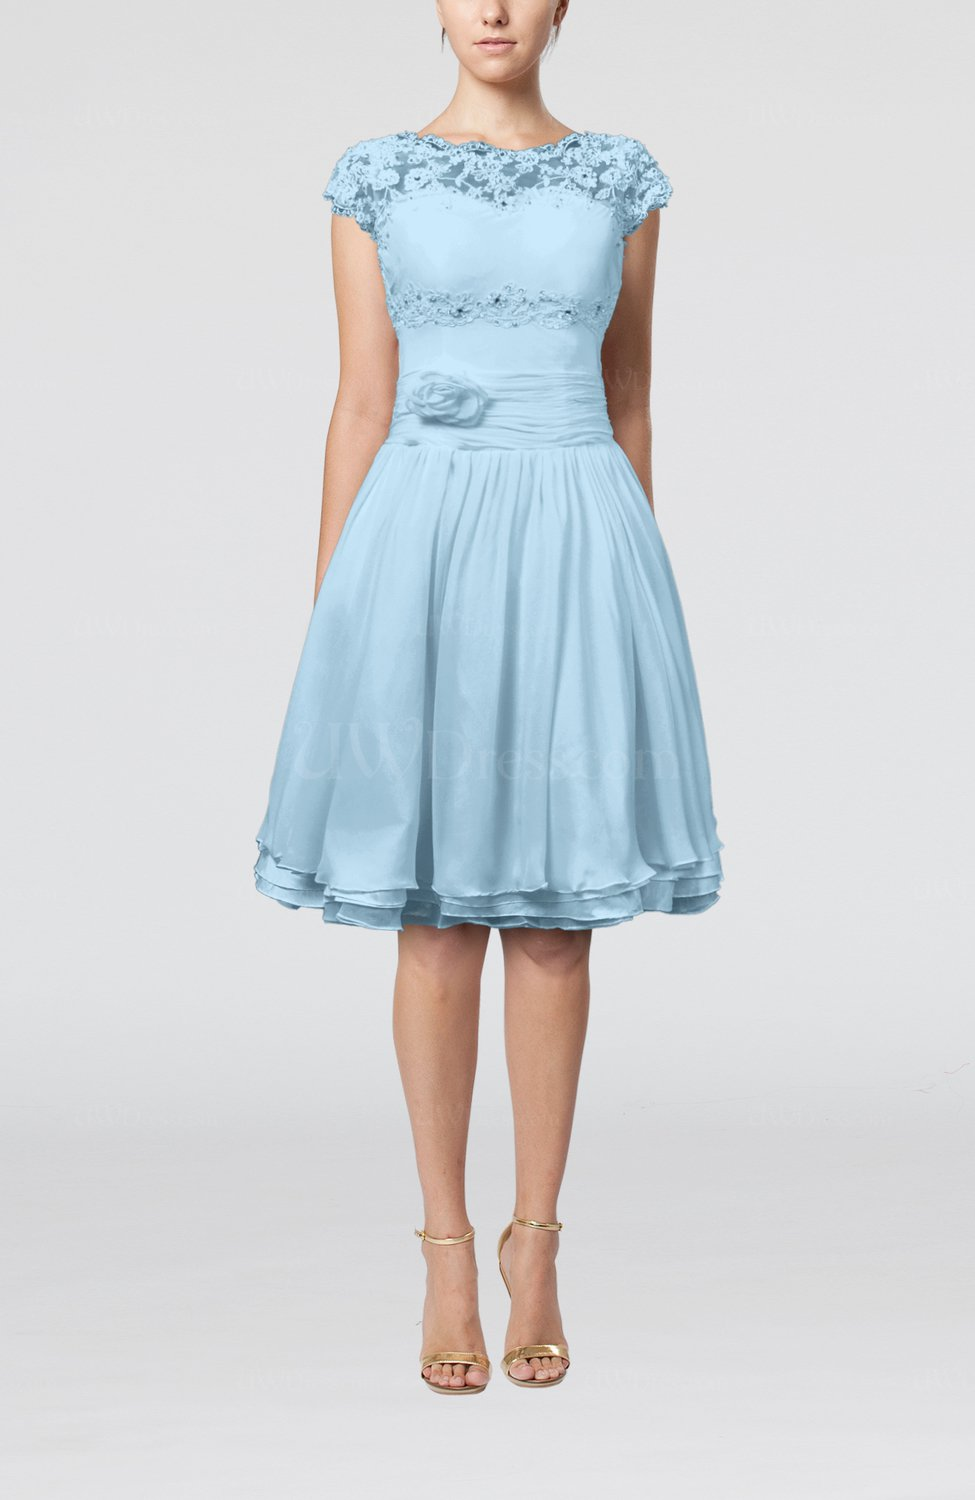 Plus Size Bridesmaid Dresses - UWDress.com